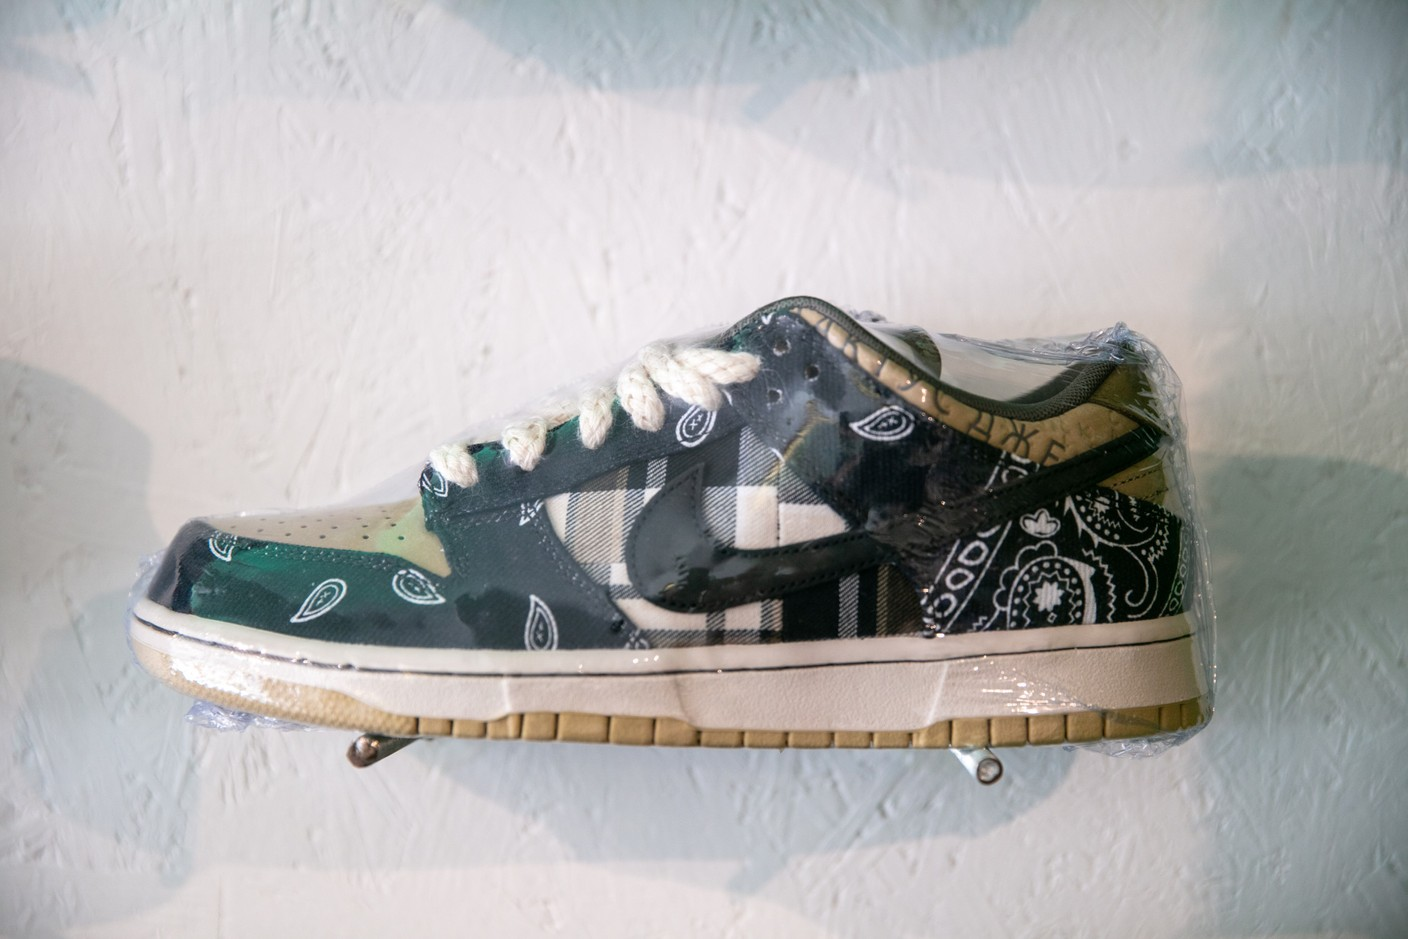 The Nike SB Dunk Low Travis Scott, priced at €1,850, is the most expensive pair in the shop. (Photo: Romain Gamba / Maison Moderne)